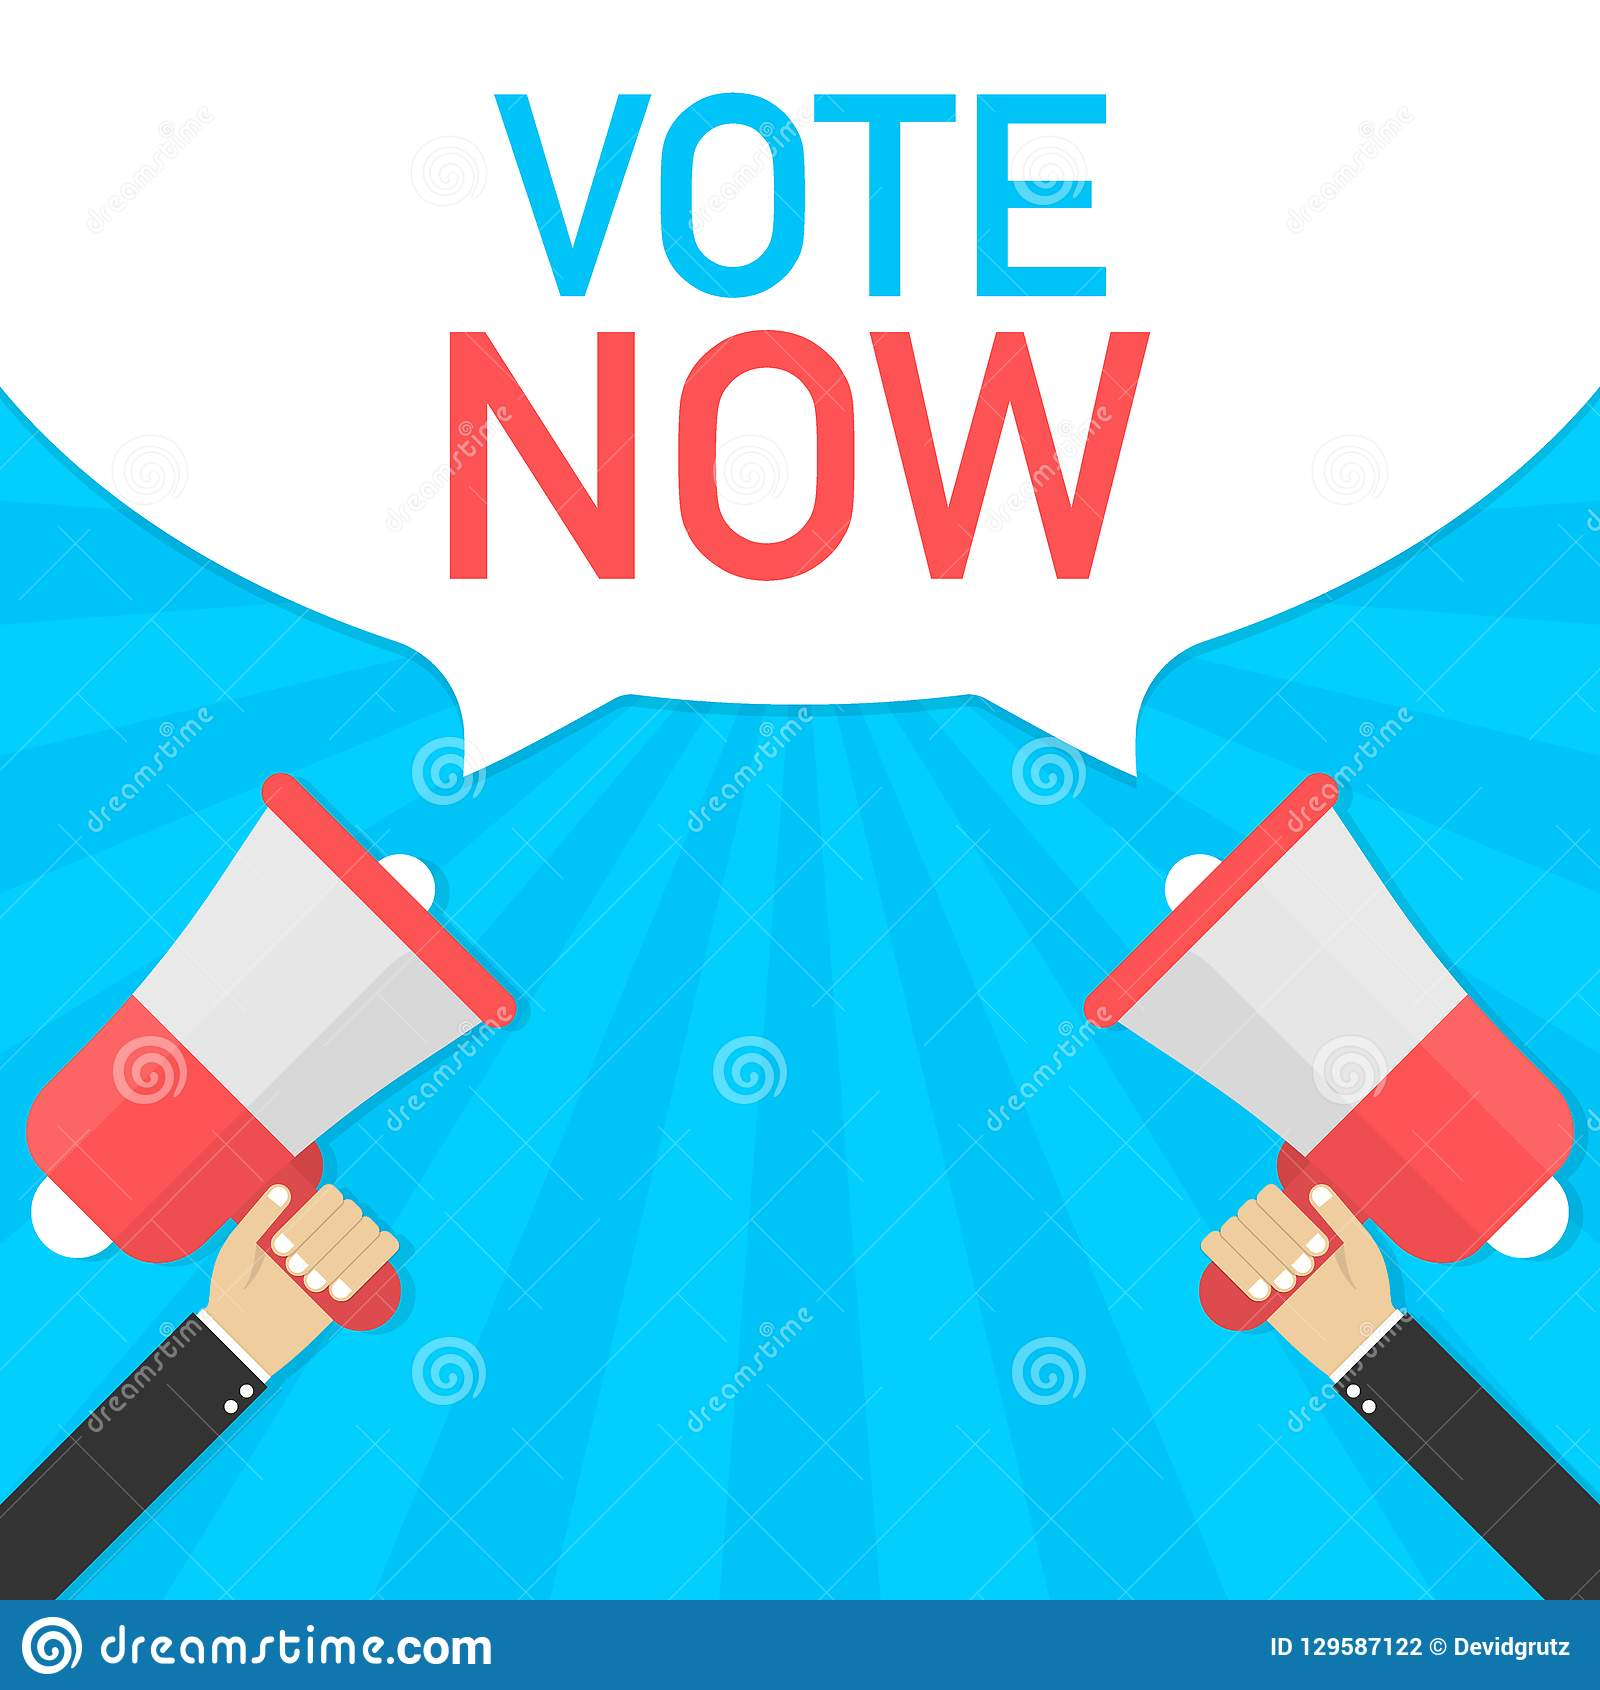 Vote now - advertising sign with megaphone. Vector illustration.